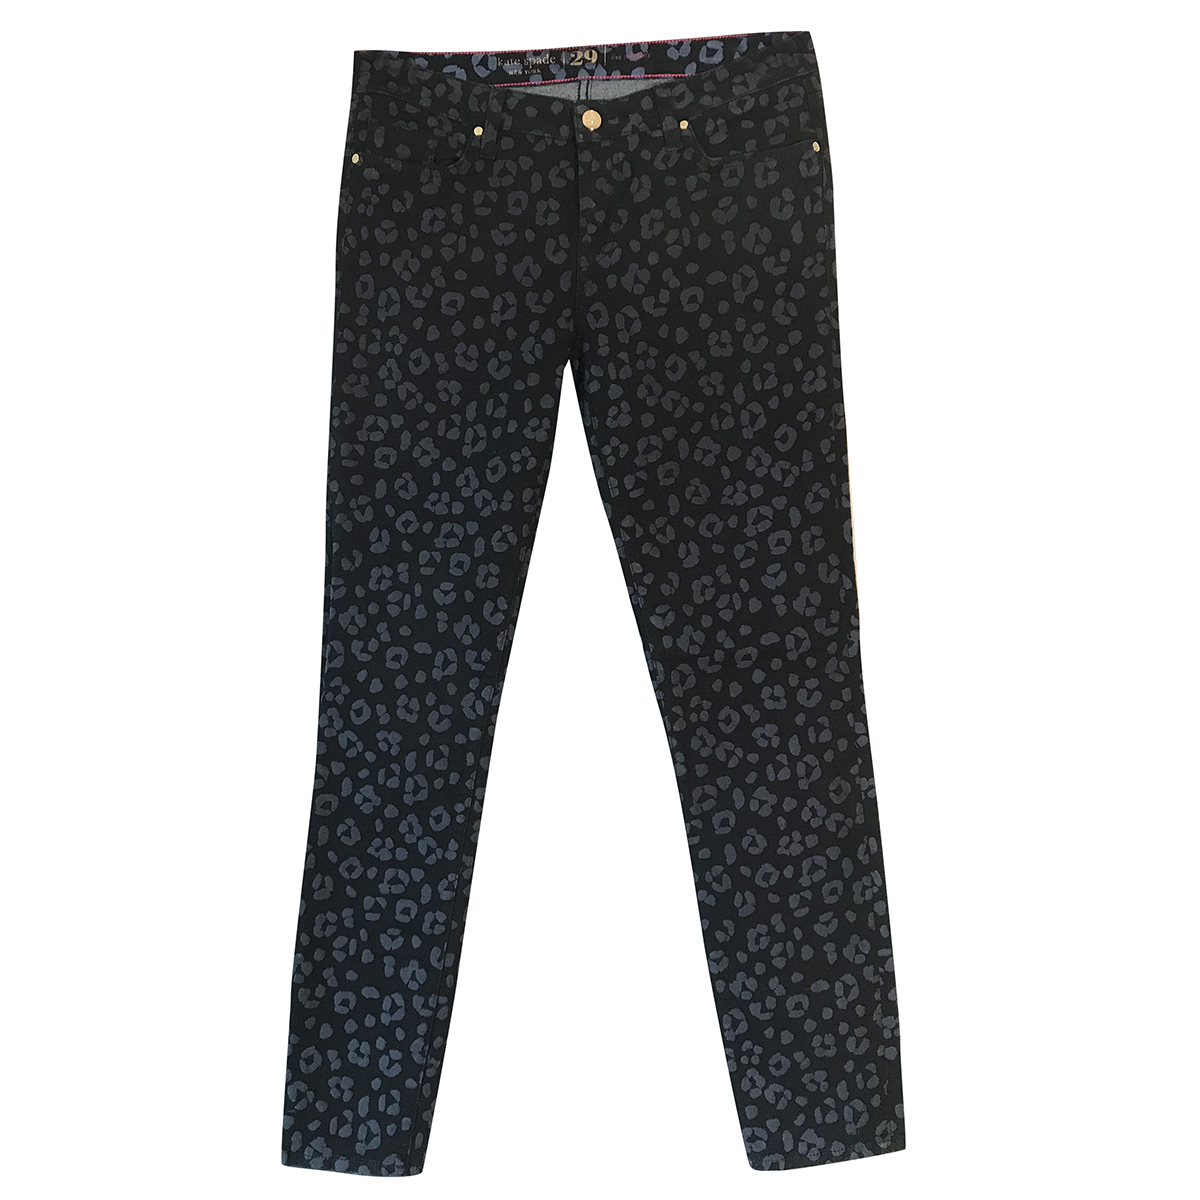 Kate Spade black slim-fit animal-print stretch jeans